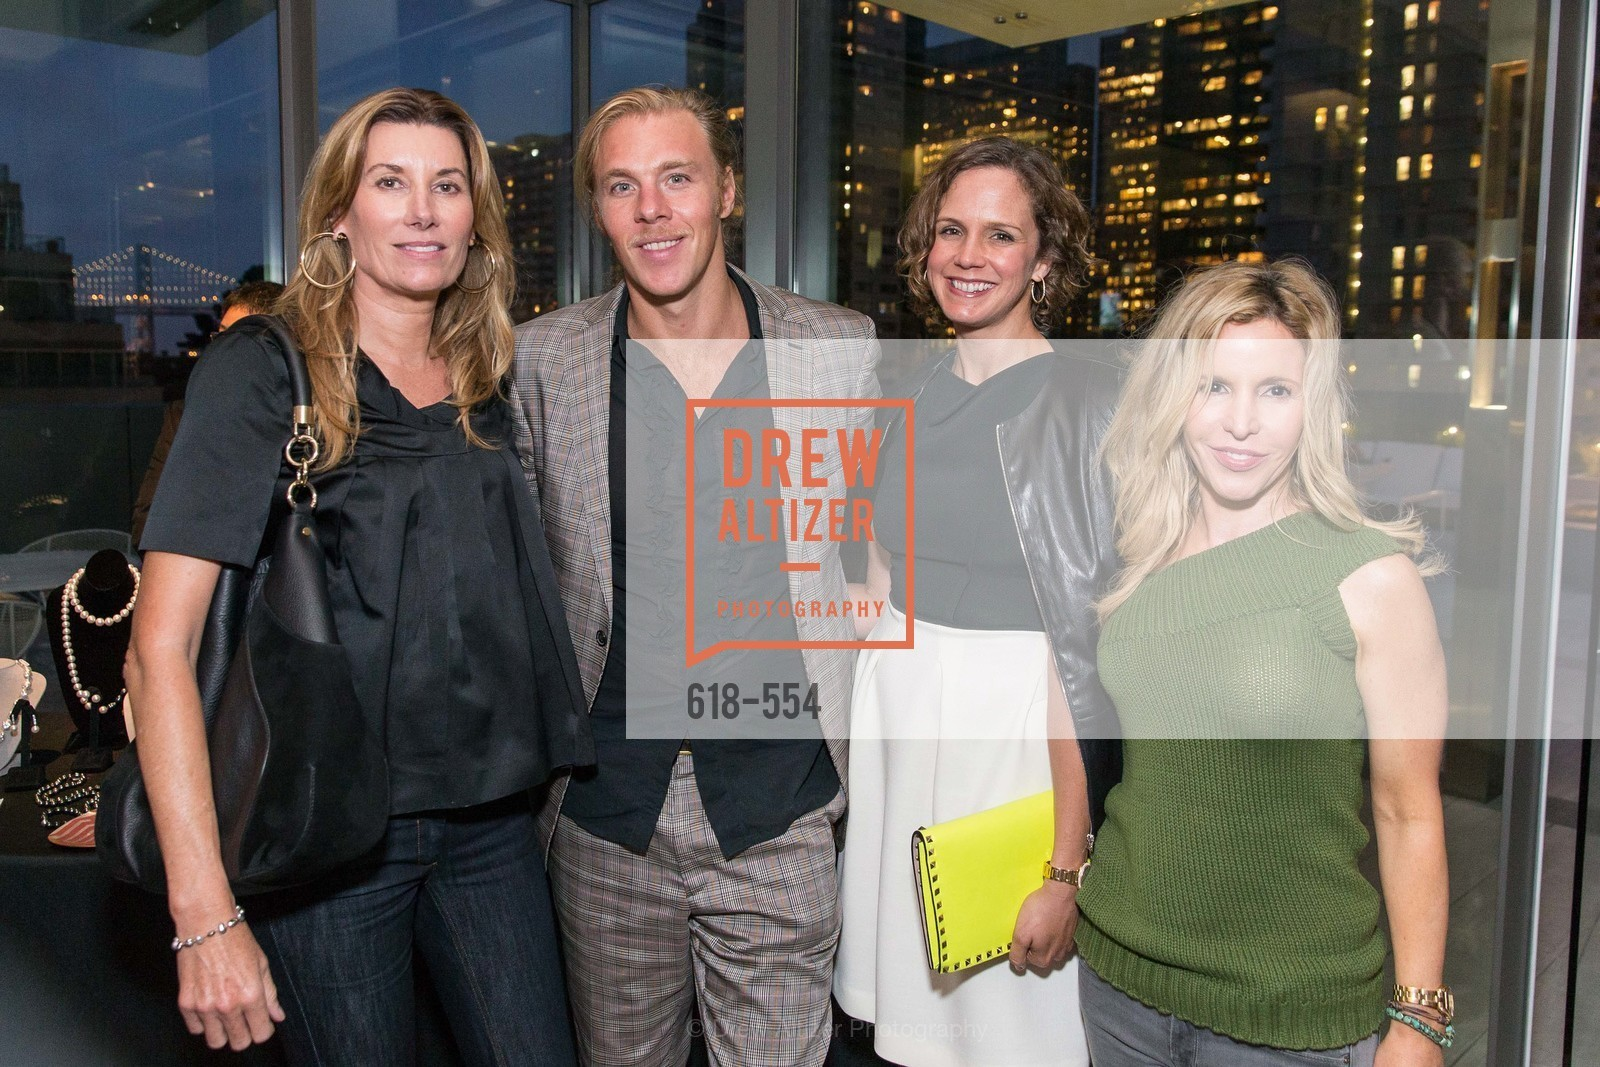 Susan Dunlevy, Will Hanigan, Jessica Moment, Lana Adair, CMH HELI SKIING Event, US, September 4th, 2014,Drew Altizer, Drew Altizer Photography, full-service agency, private events, San Francisco photographer, photographer california